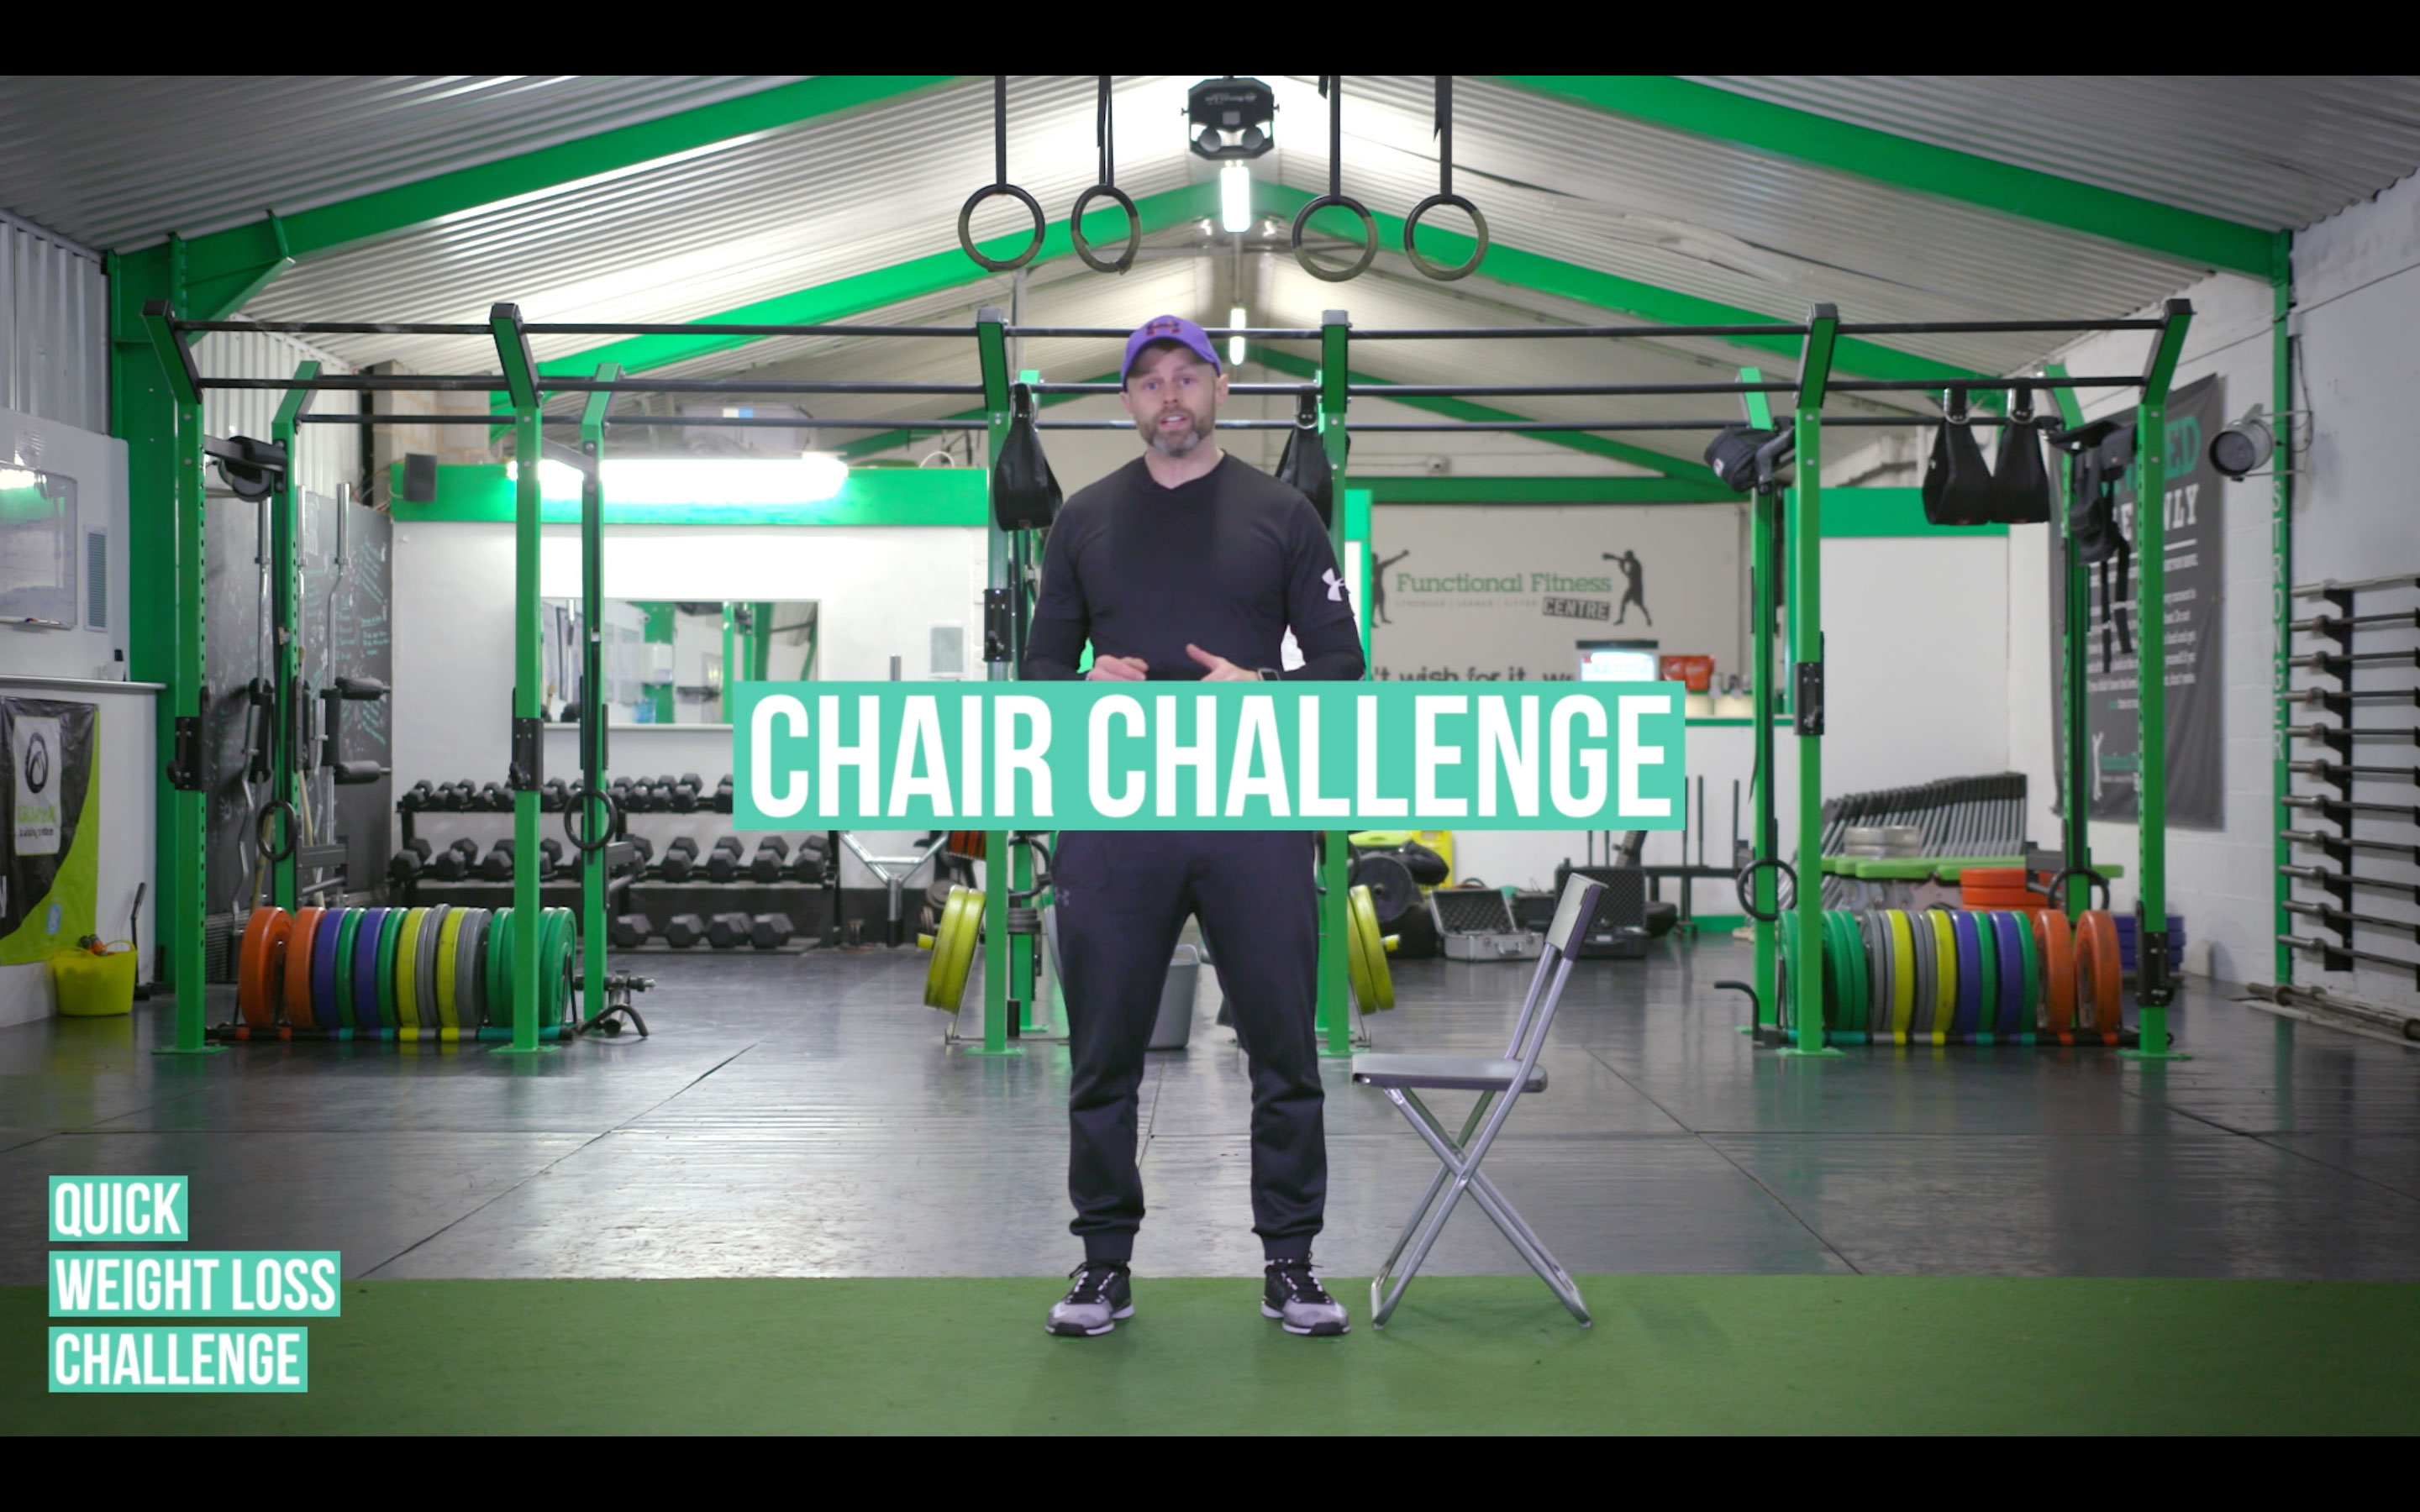 chair gym weight loss wheelchair for kids quick challenge tonic